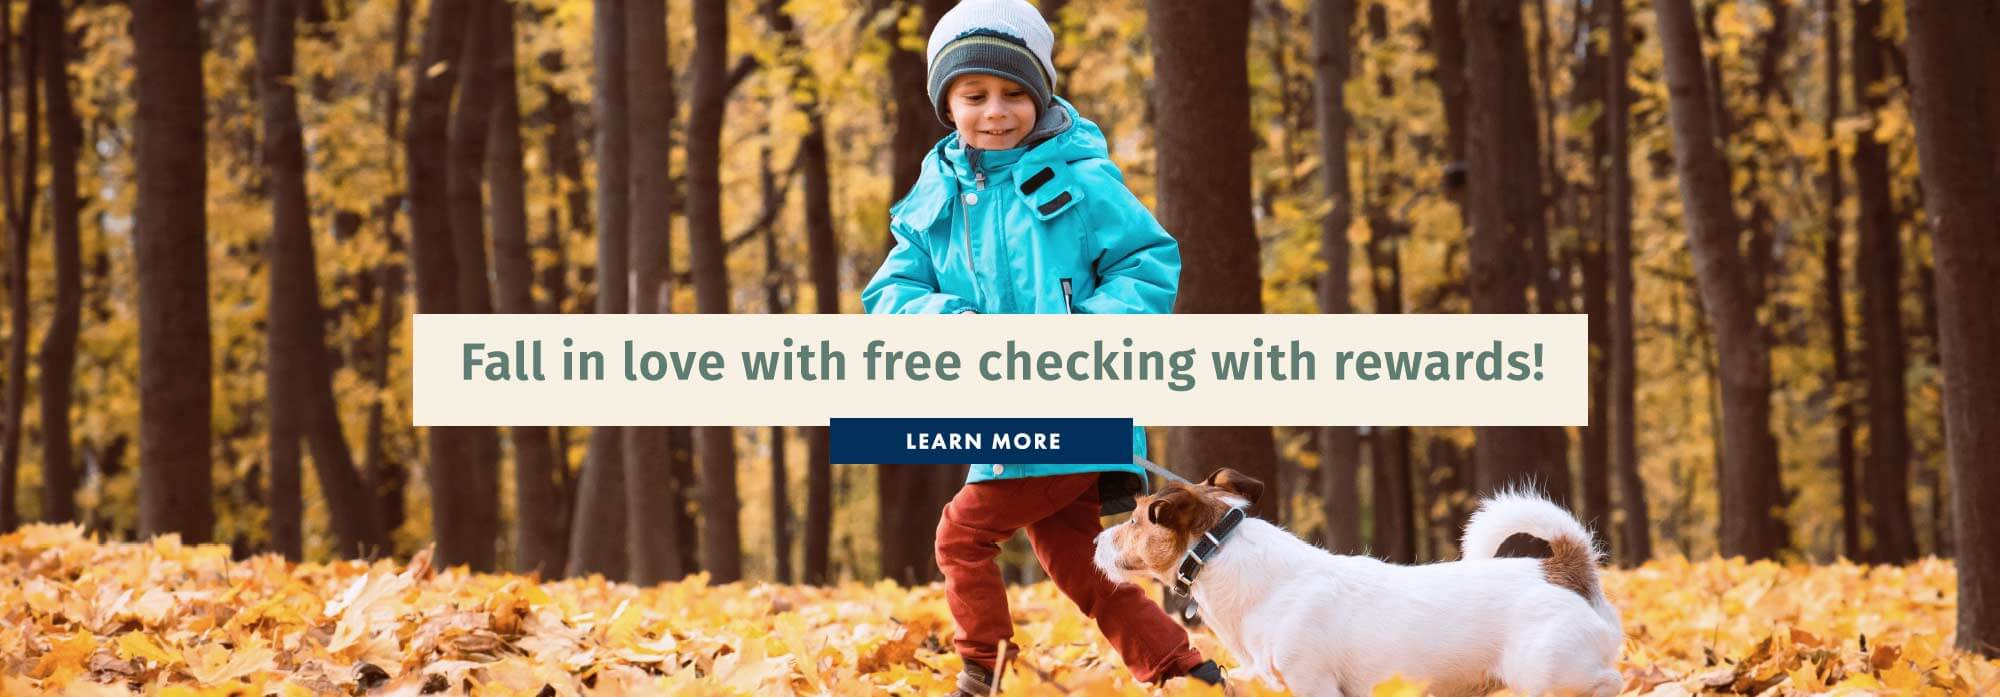 Fall in love with free checking with rewards!